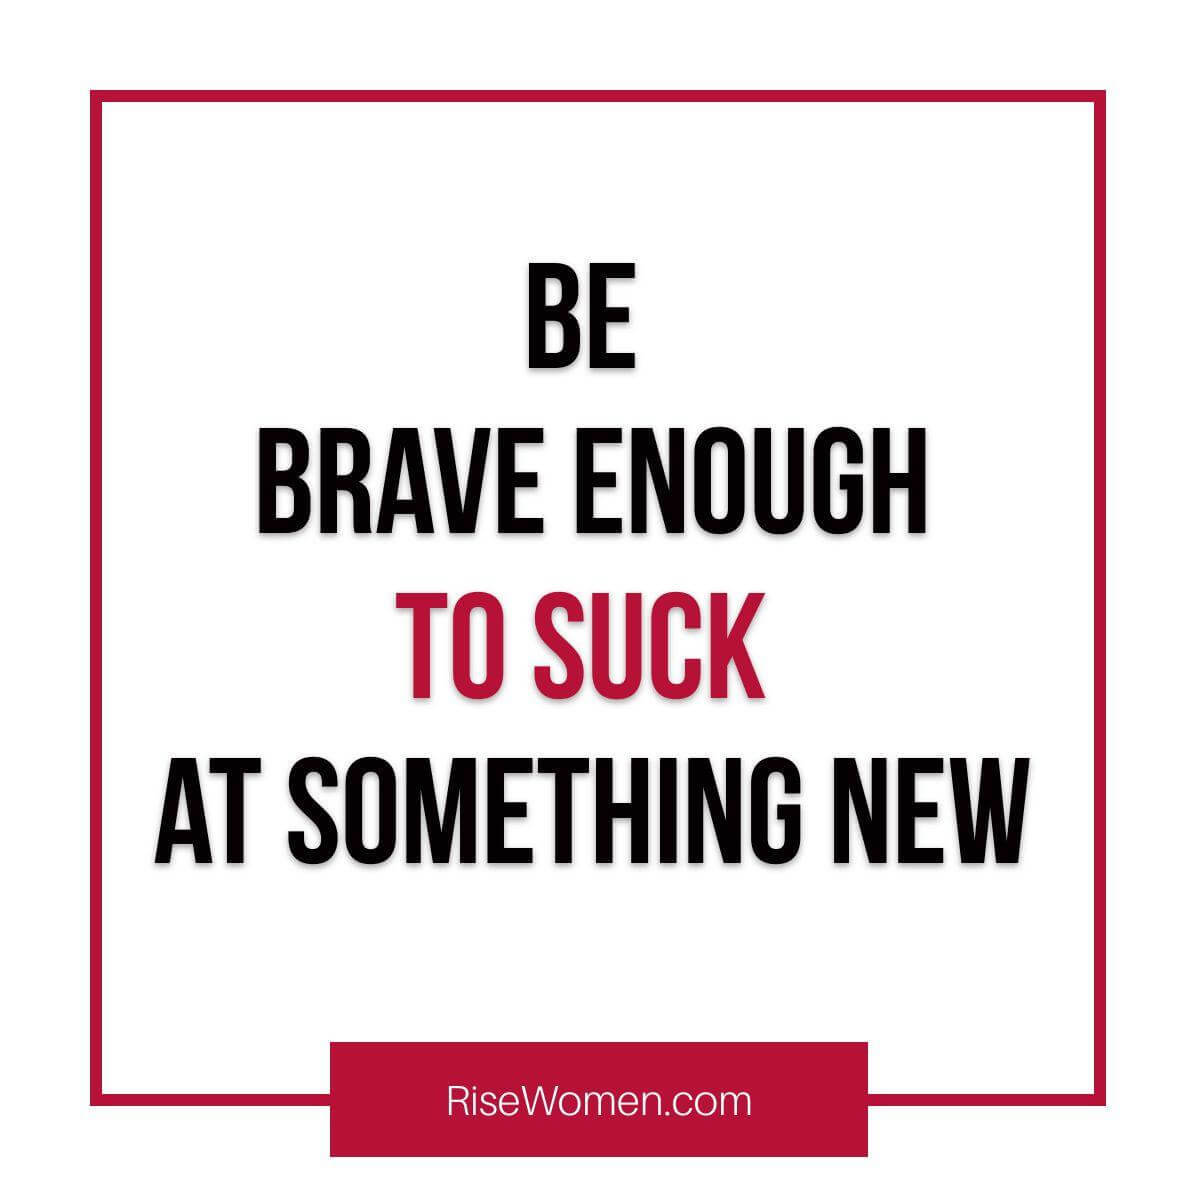 Be brave enough to suck at something new.